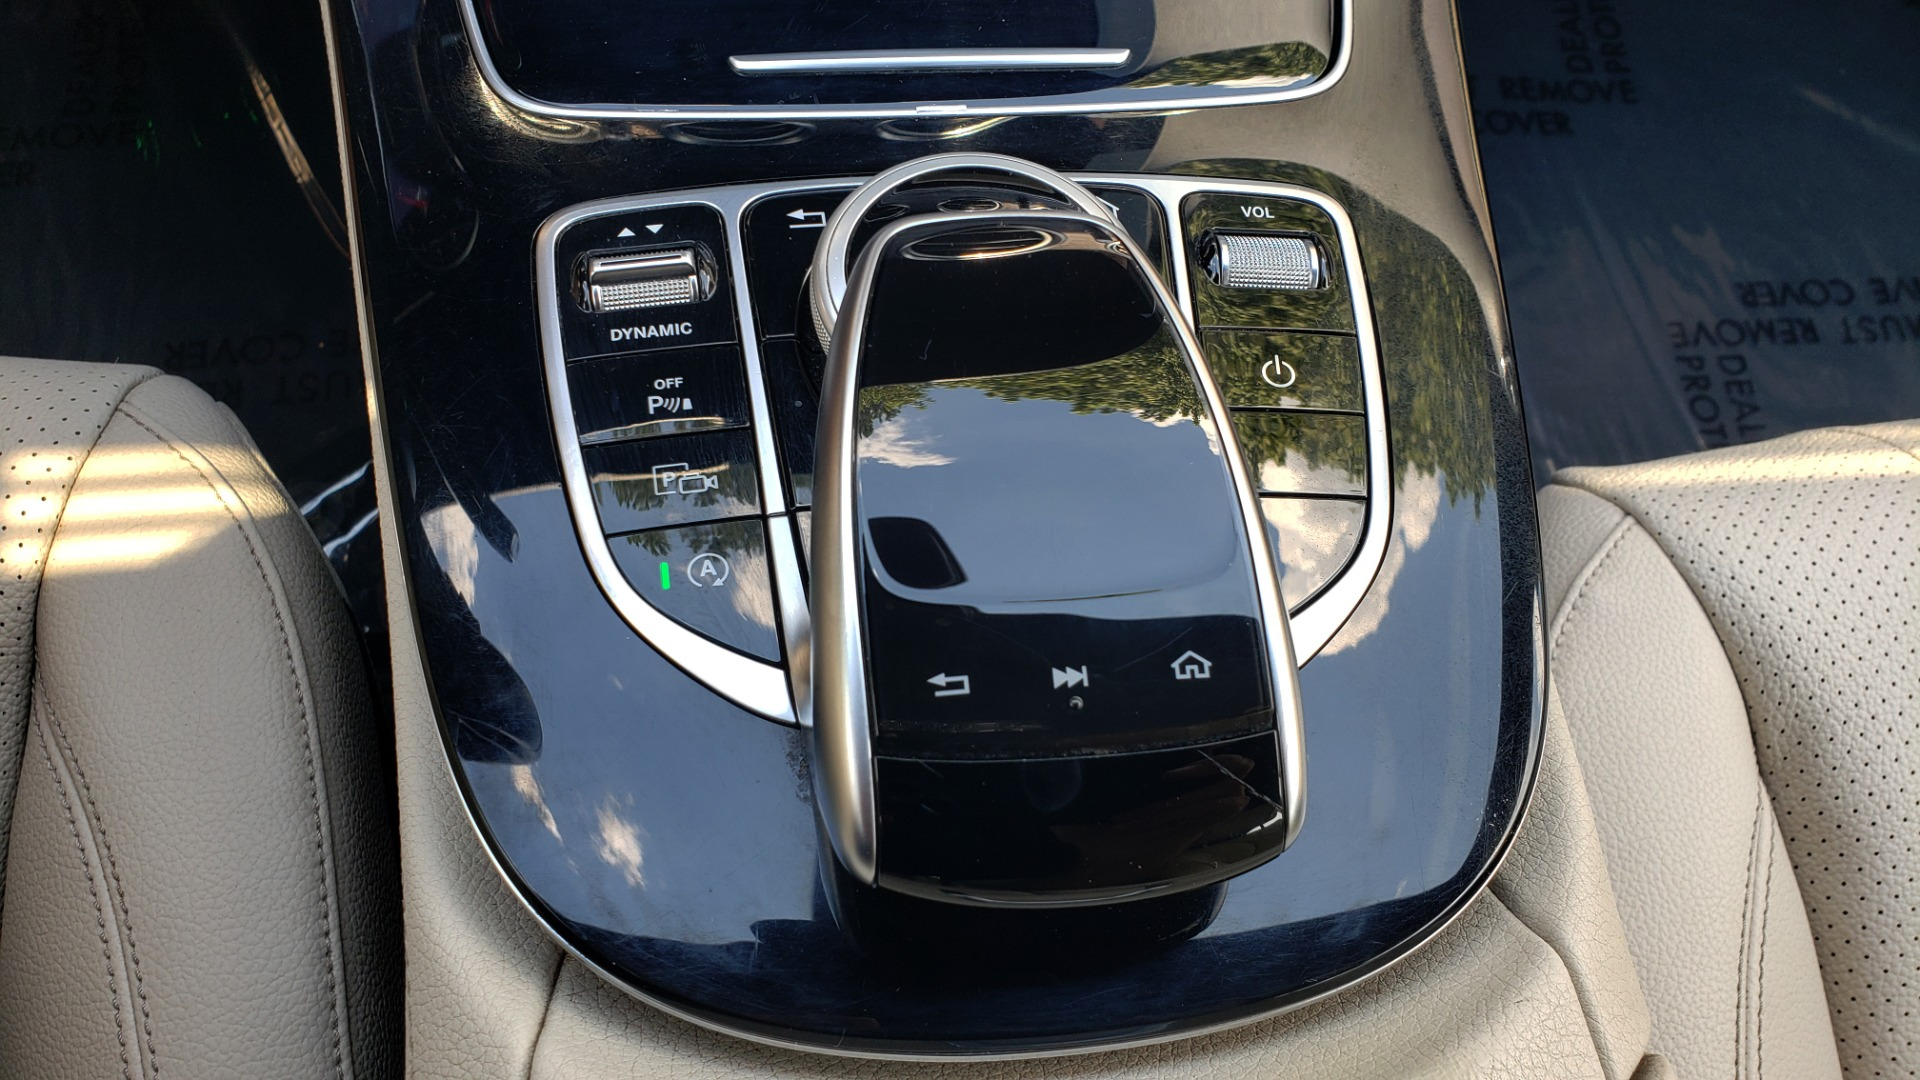 Used 2017 Mercedes-Benz E-CLASS E 300 PREMIUM / SPORT / NAV / SUNROOF / HTD STS / BSM / REARVIEW for sale $27,995 at Formula Imports in Charlotte NC 28227 46